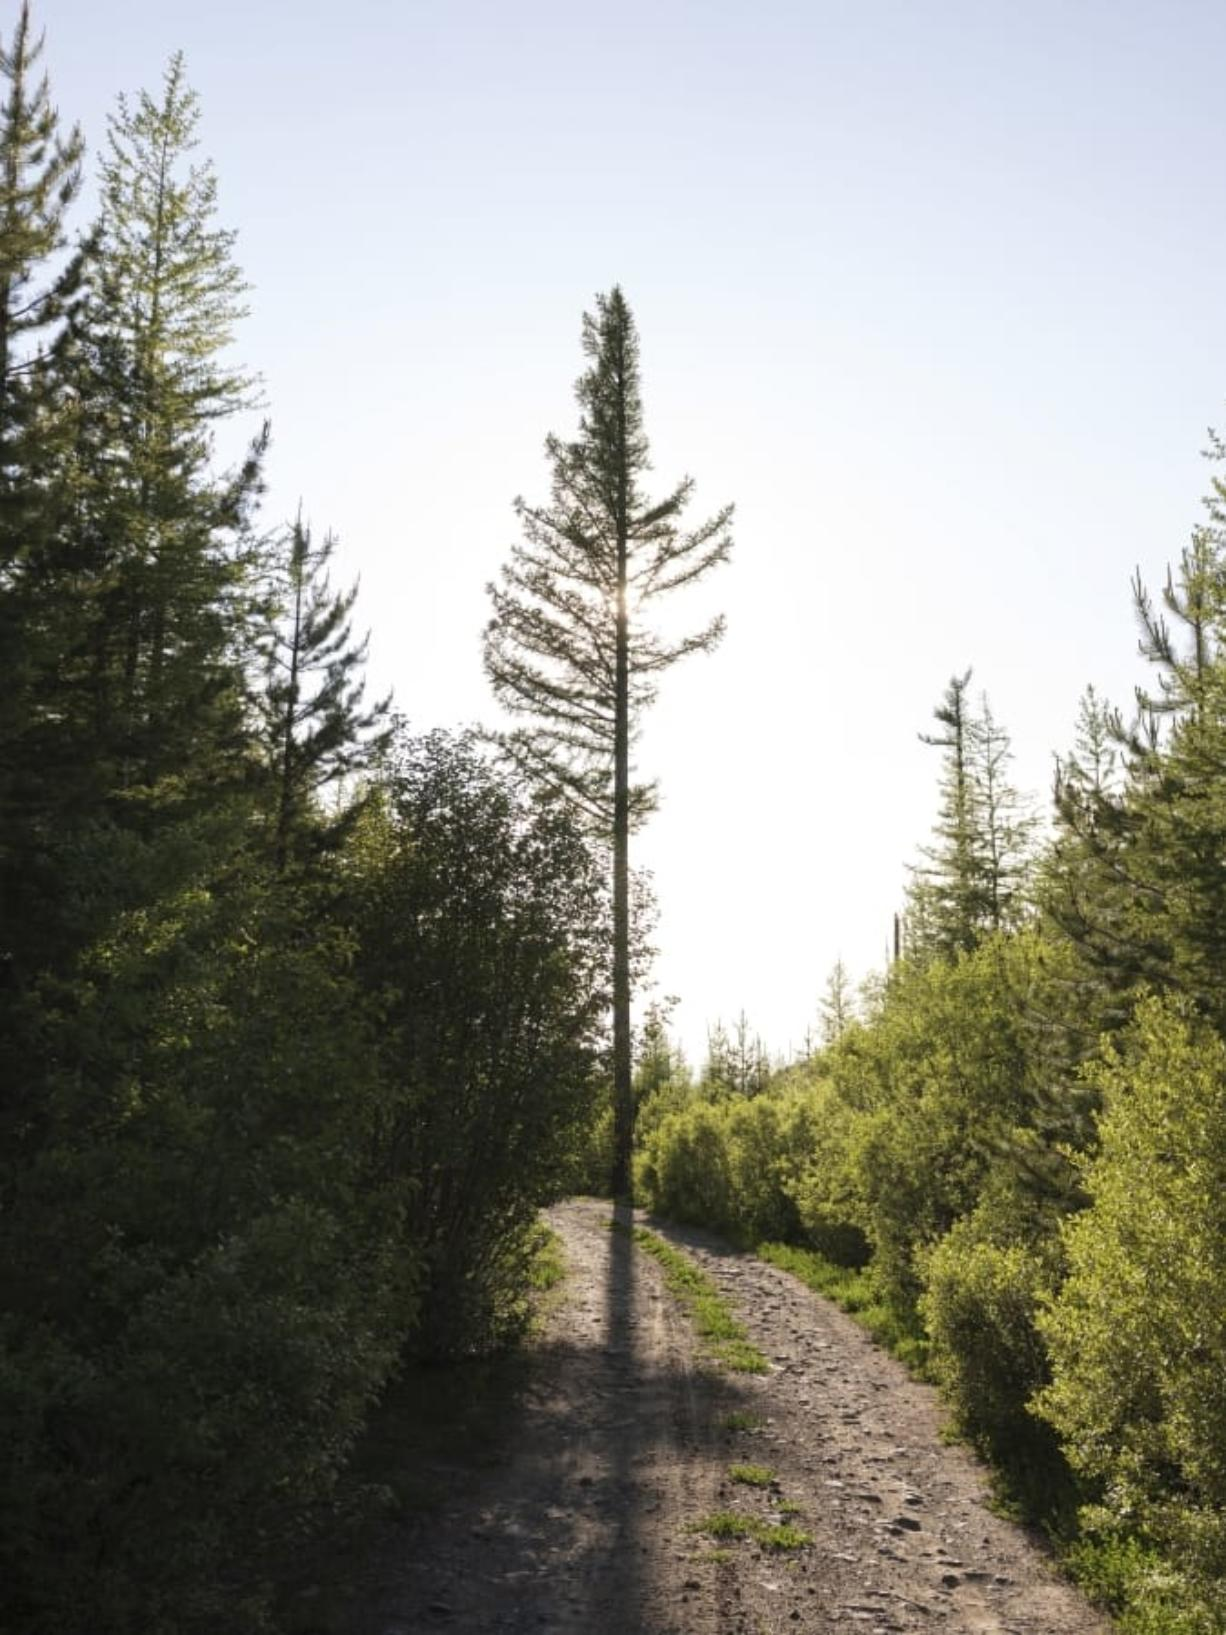 A forestry road passes through a young forest in the high country of the Malheur National Forest, Ore., in June 2019.